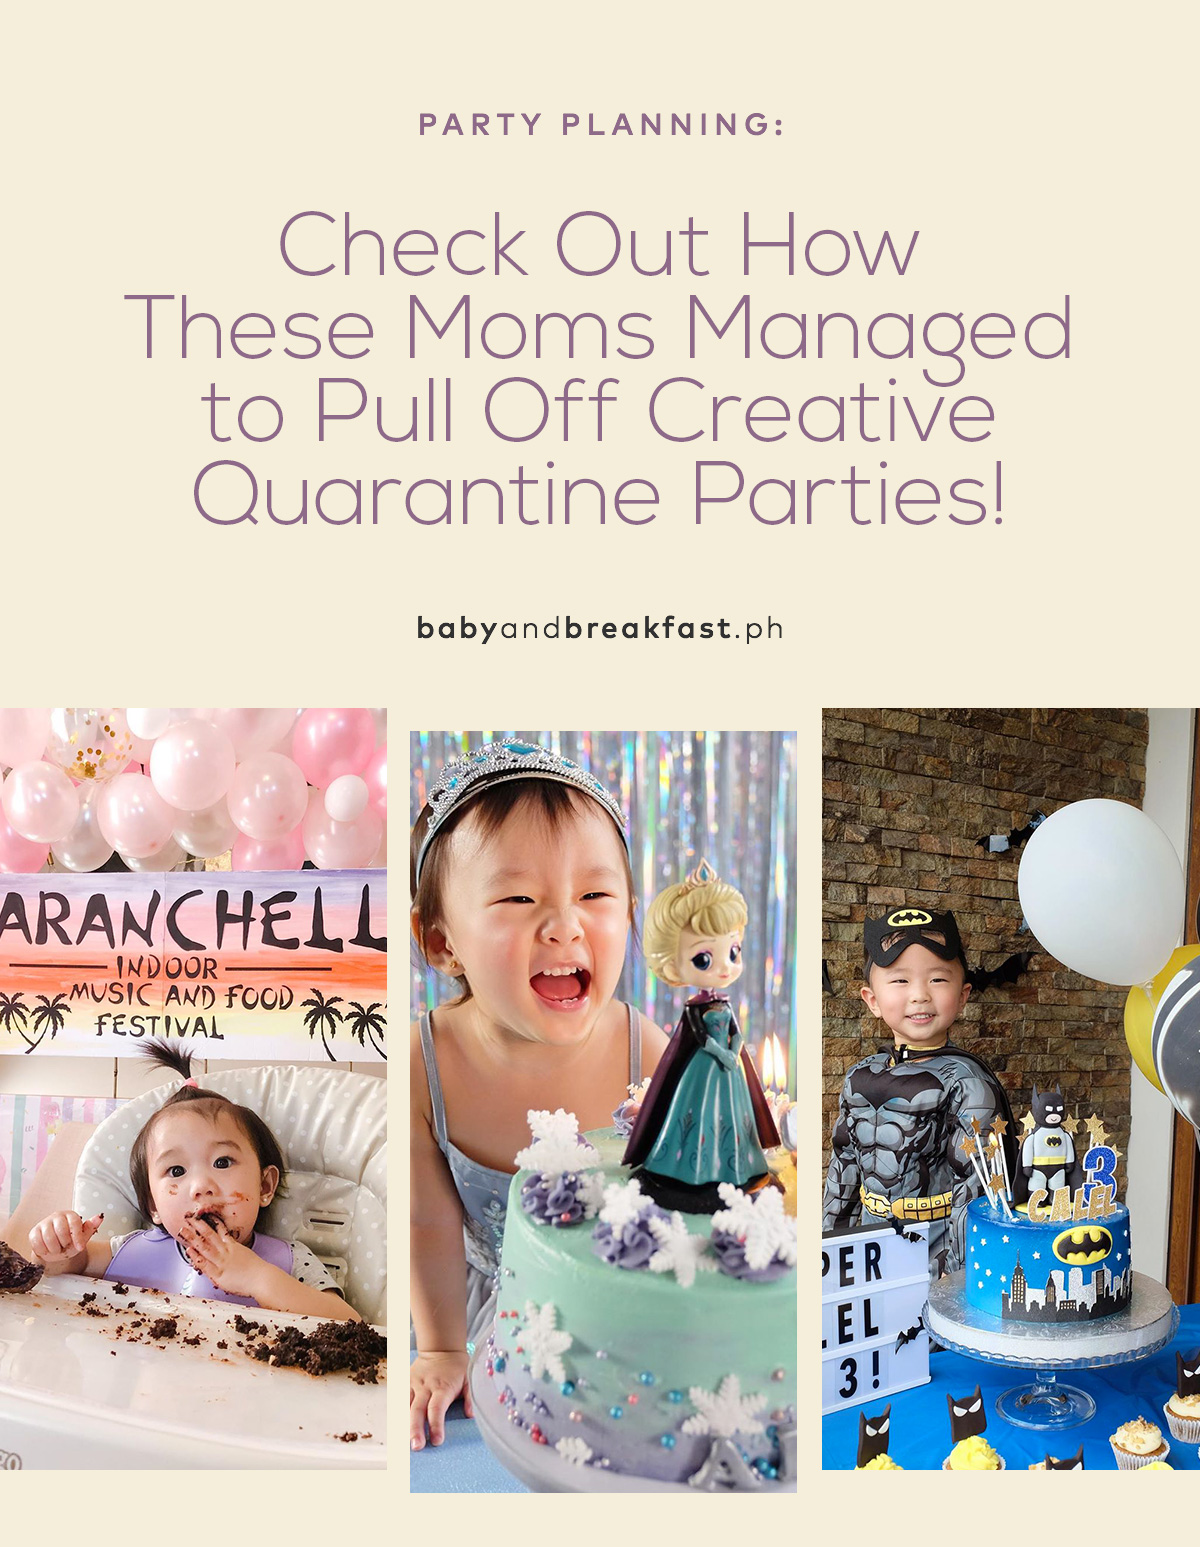 Check Out How These Moms Managed to Pull Off Creative Quarantine Parties!